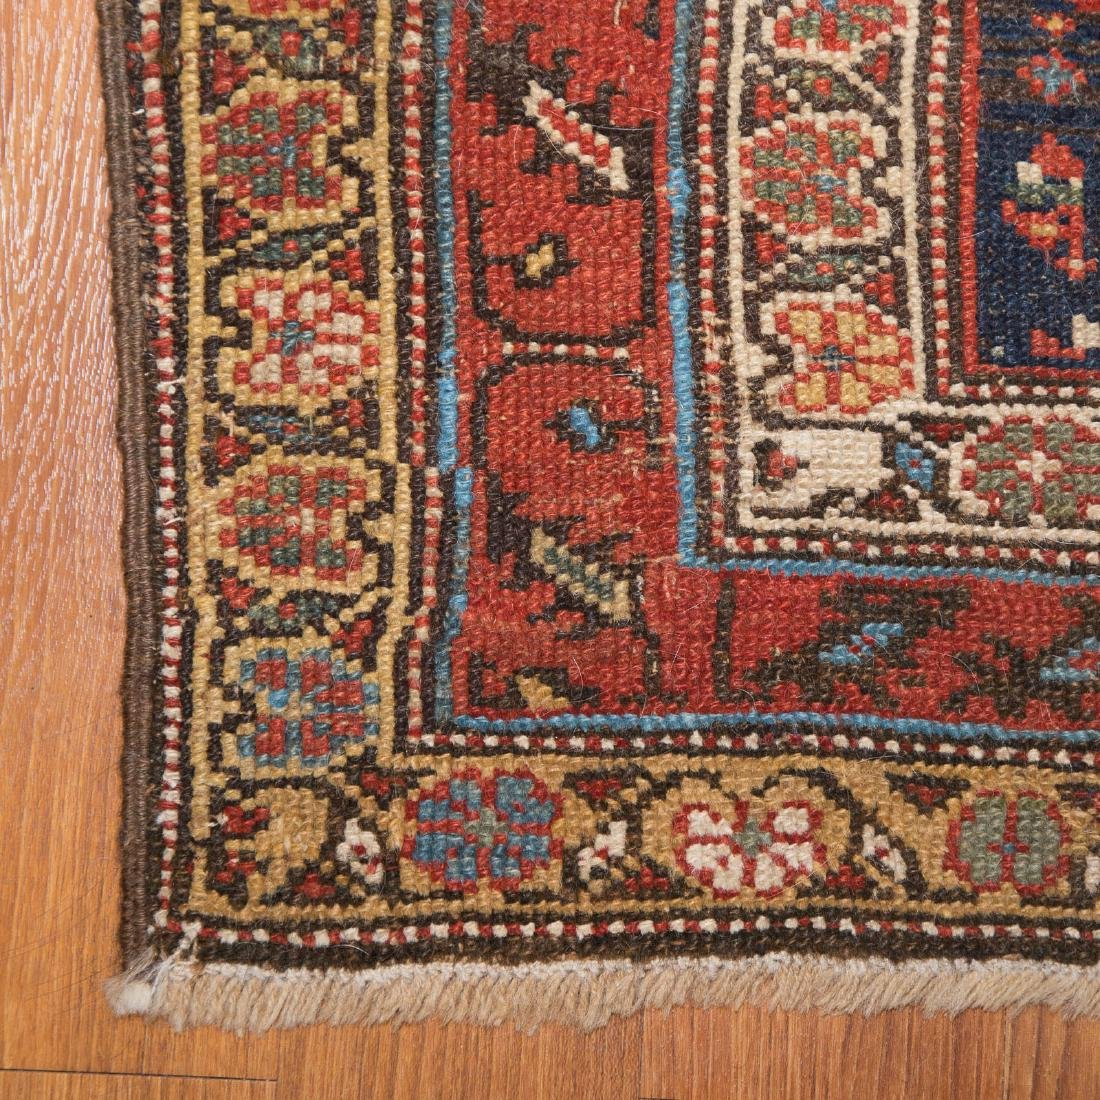 Three antique scatter rugs - 2